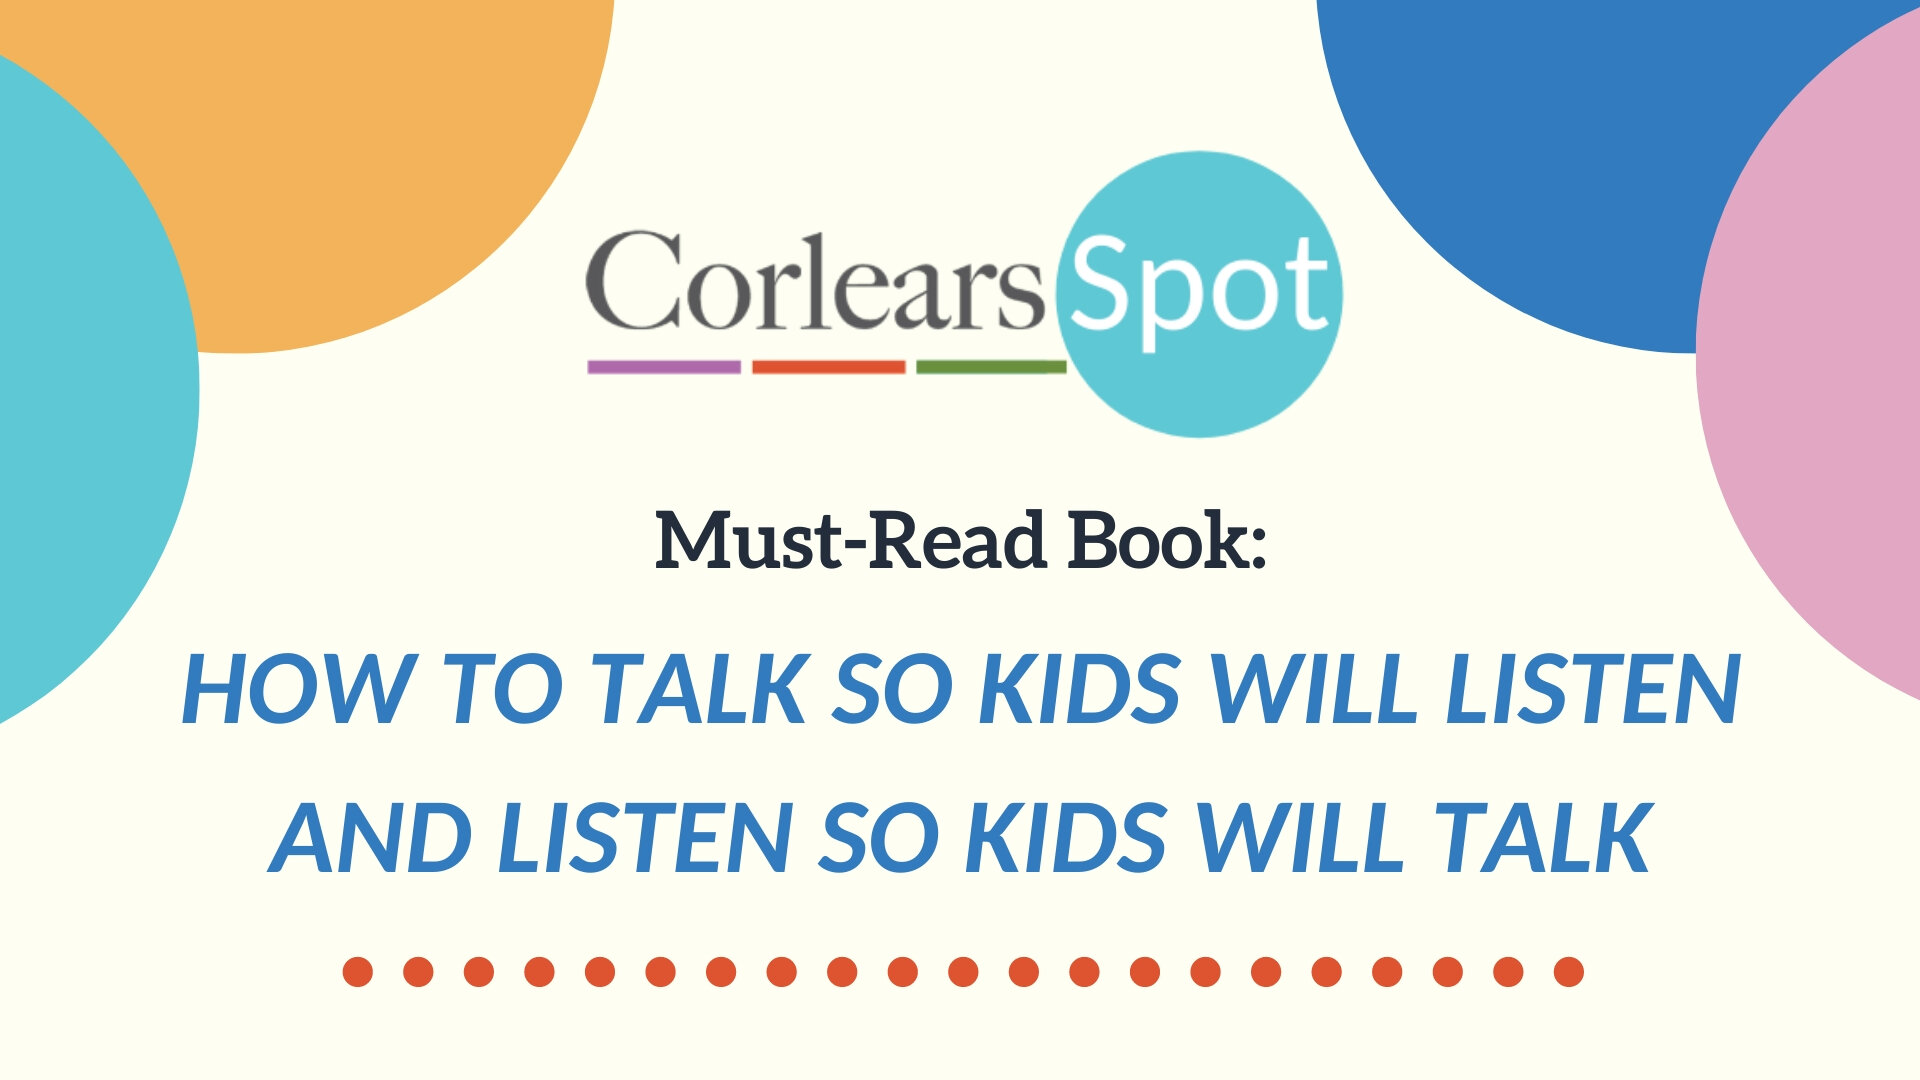 Corlears Spot How to Talk so Kids Will LIsten and How to Listen so Kids Will Talk Book Recommendation.jpg